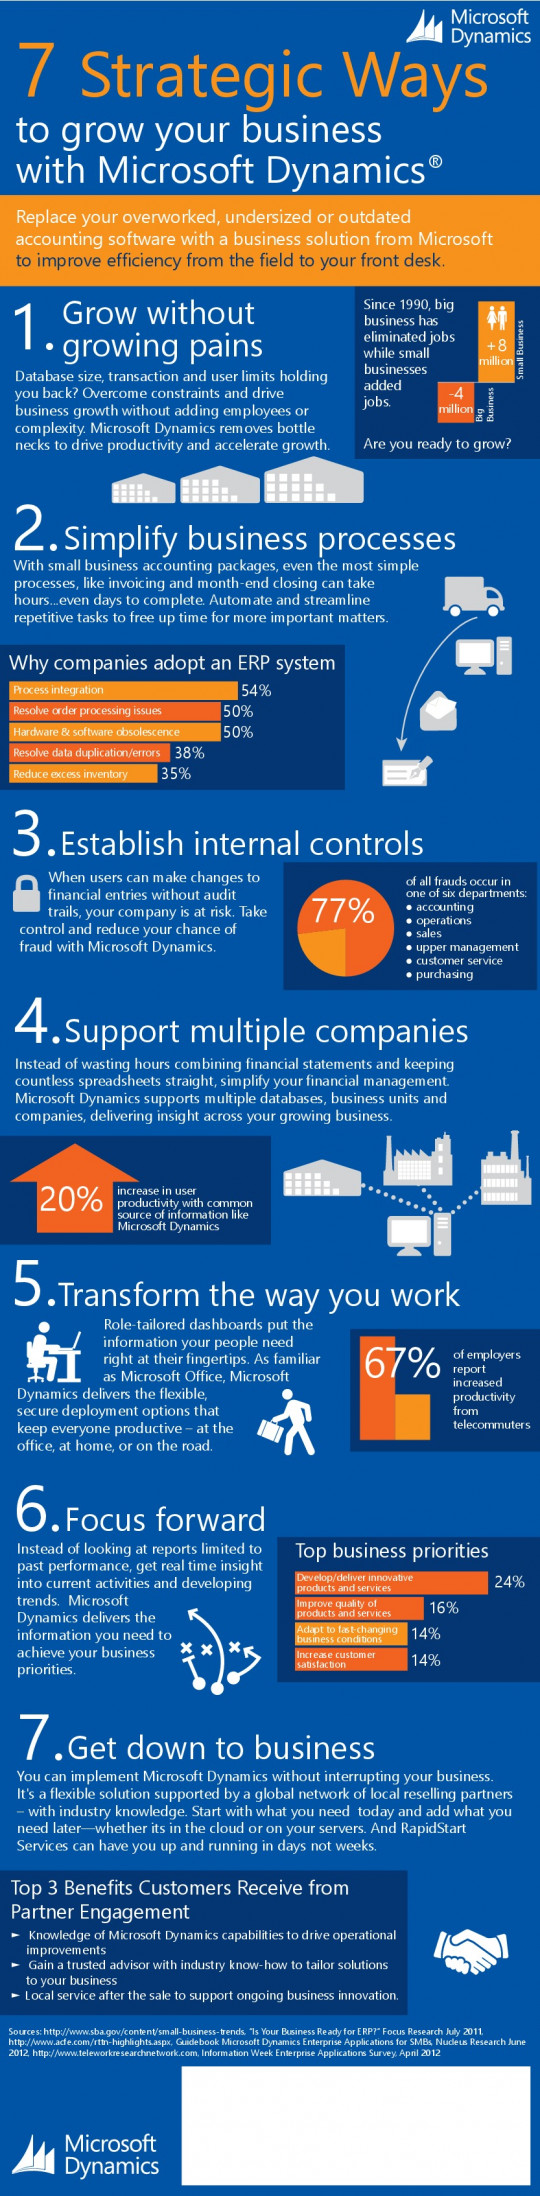 7 Strategic Ways to Grow Your Business With Microsoft Dynamics